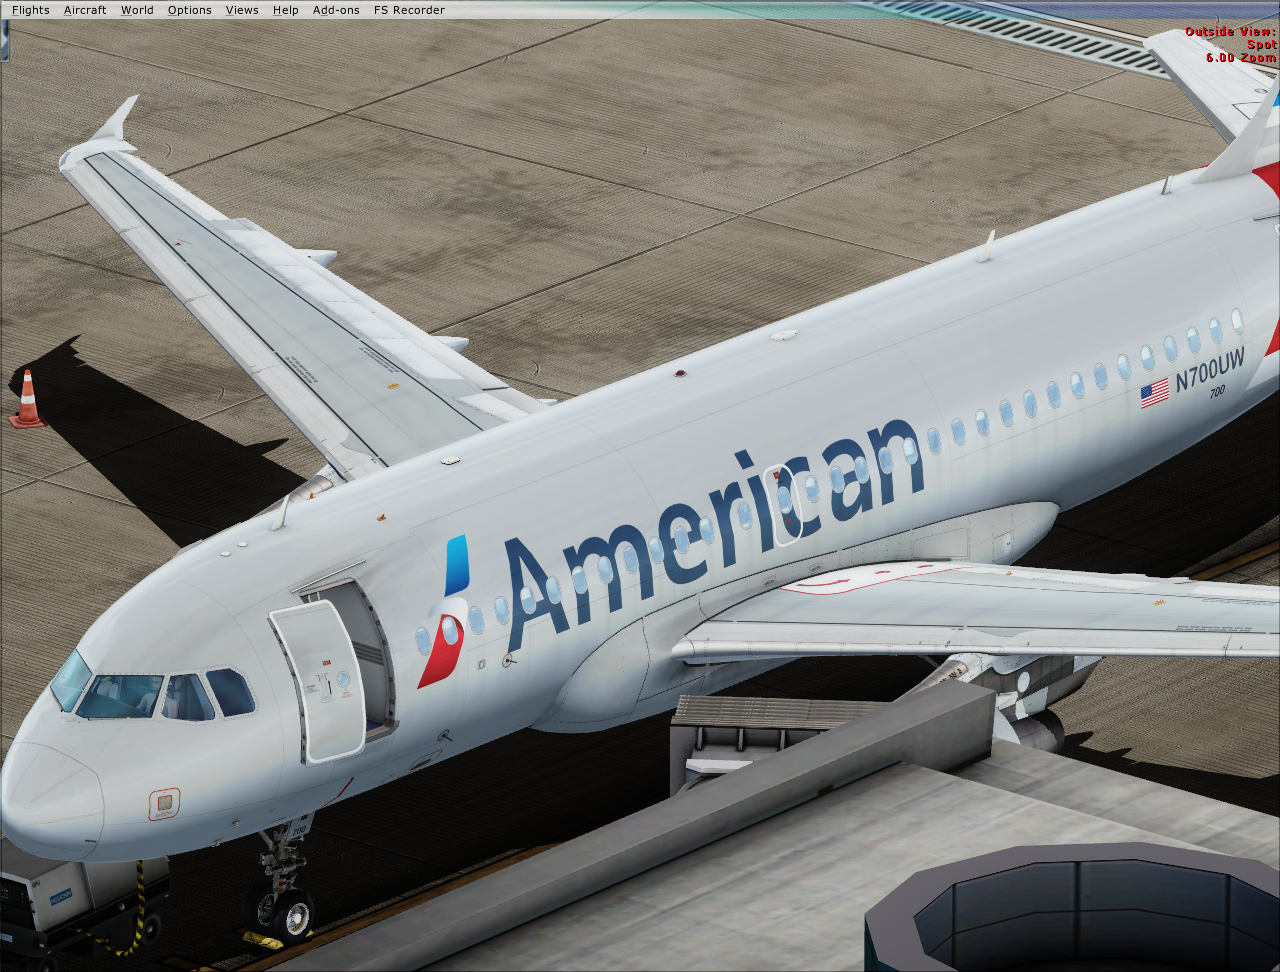 American Airlines N700UW Airbus A319-112 (Non-sharklet) - Airbus